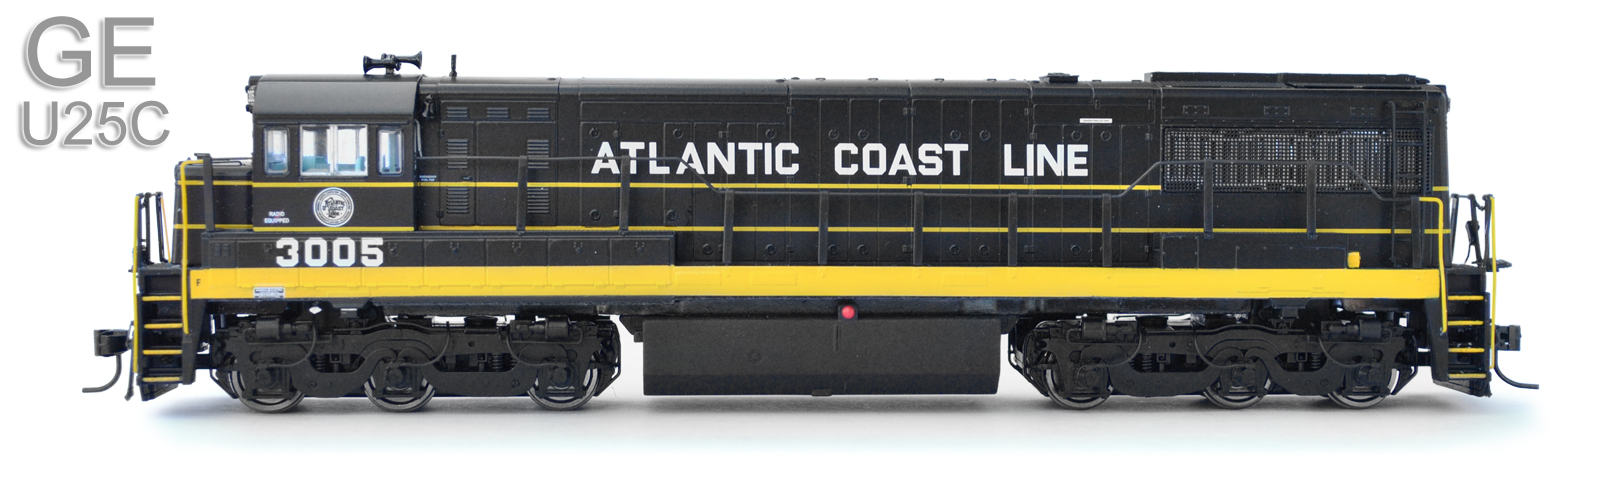 Atlantic Coast Line (Coming Soon): 3005, 3009